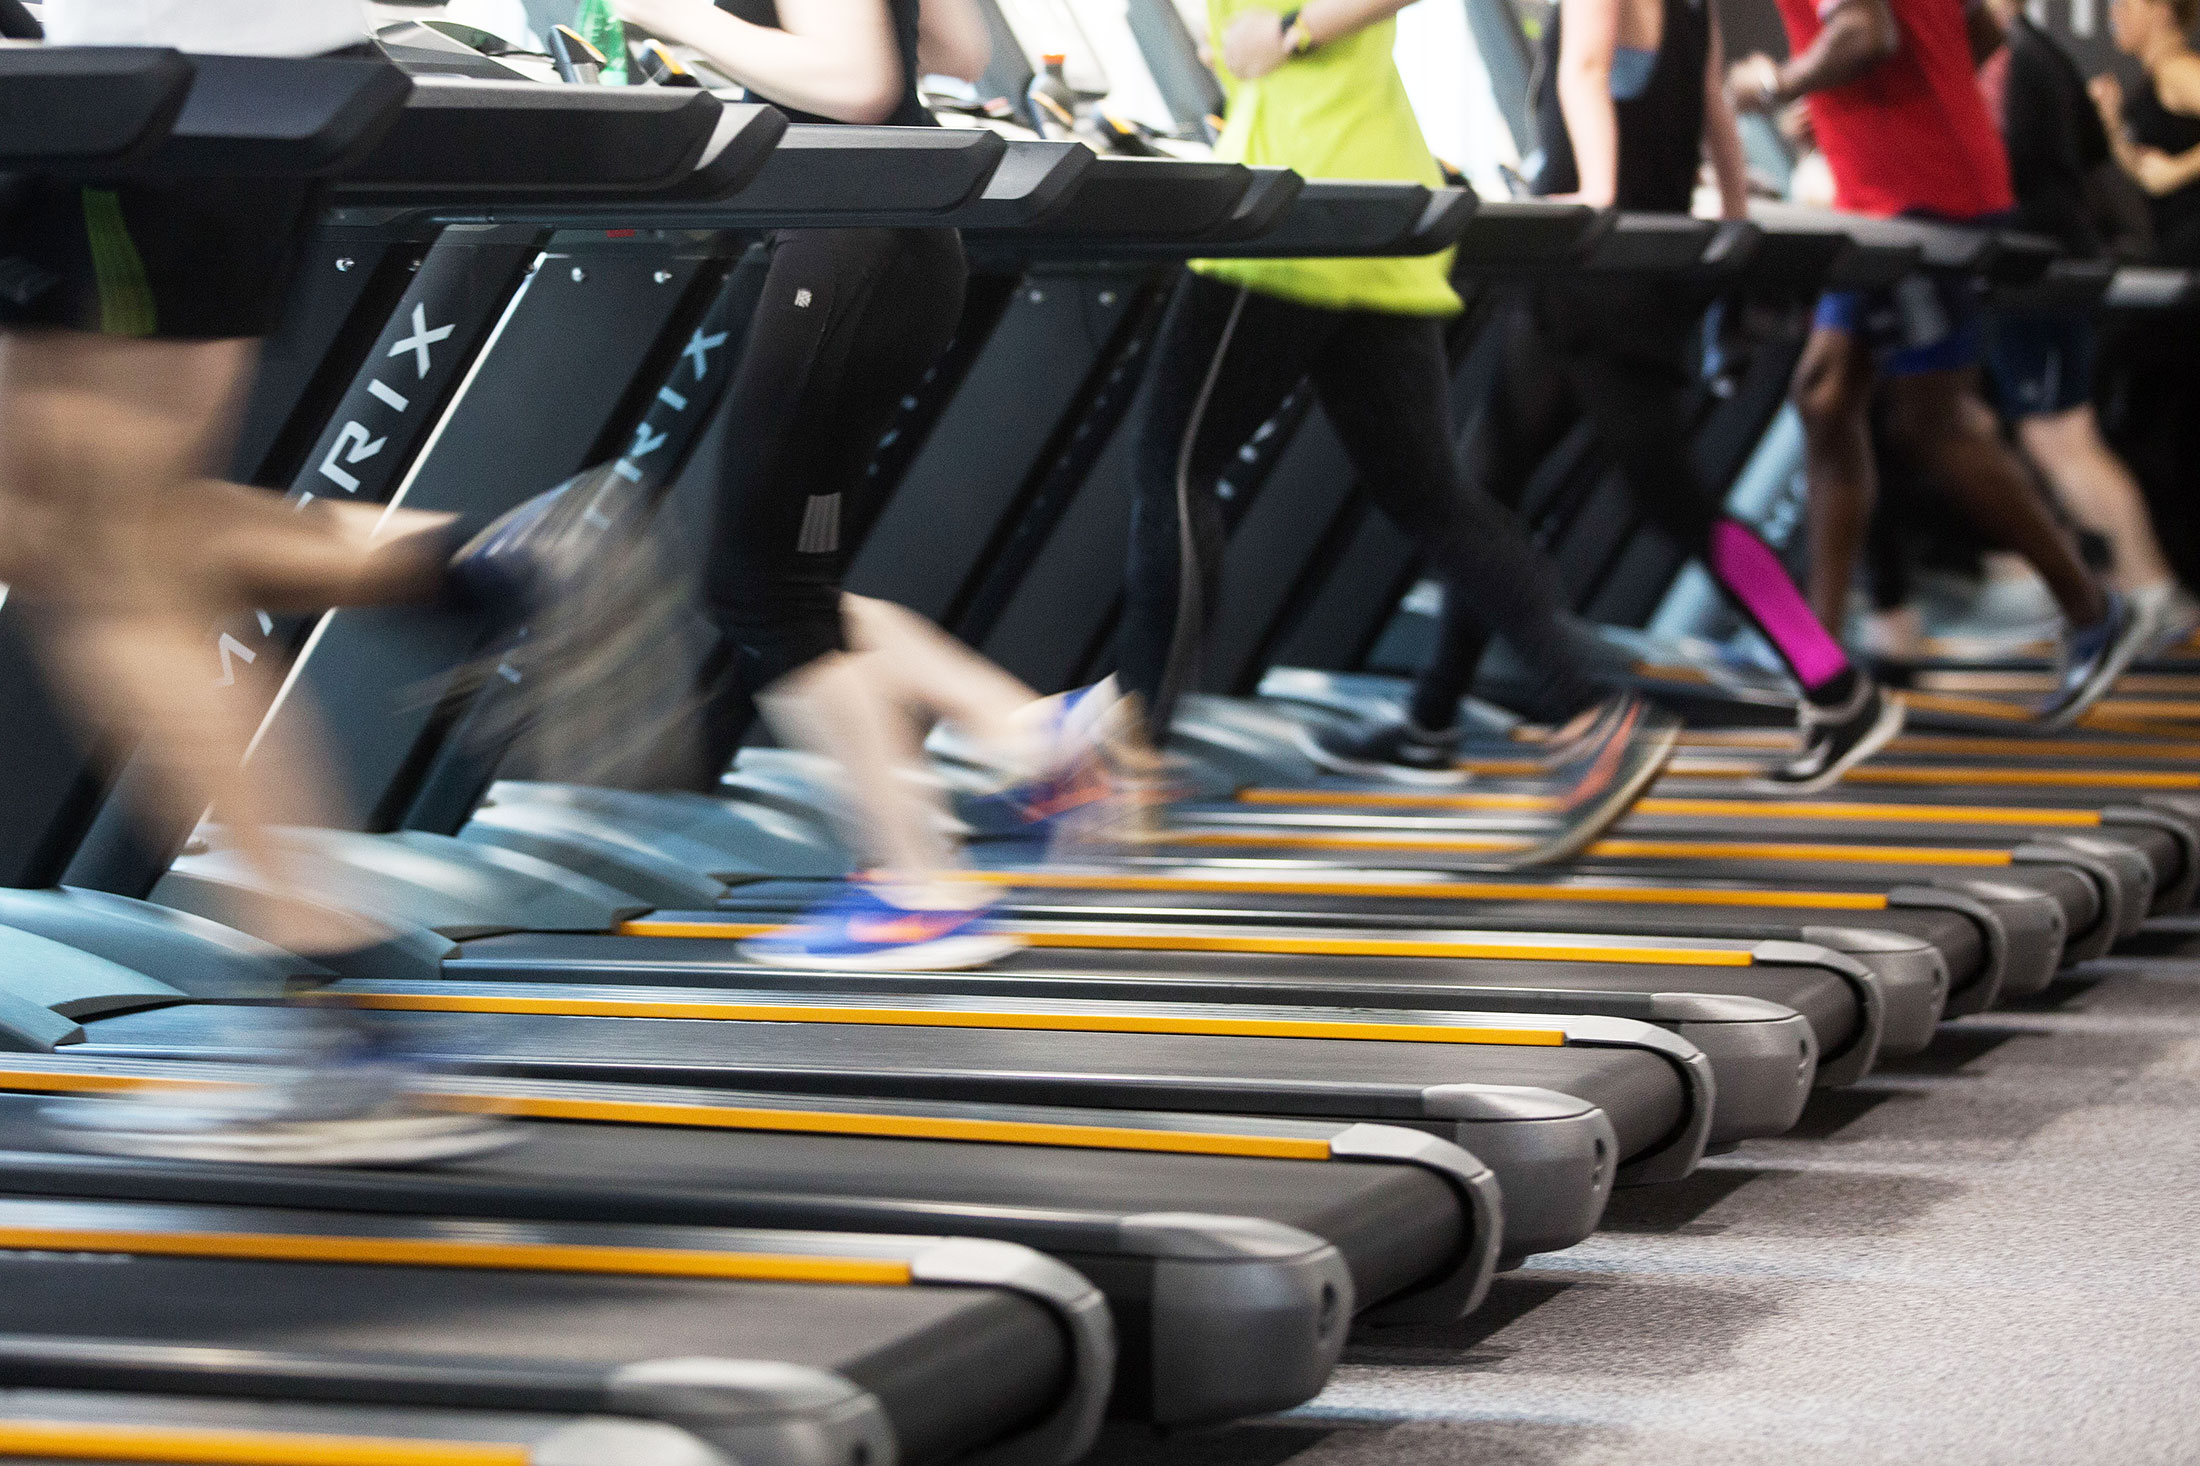 People run on treadmills to exercise during a work out session. Photographer: Simon Dawson/Bloomberg